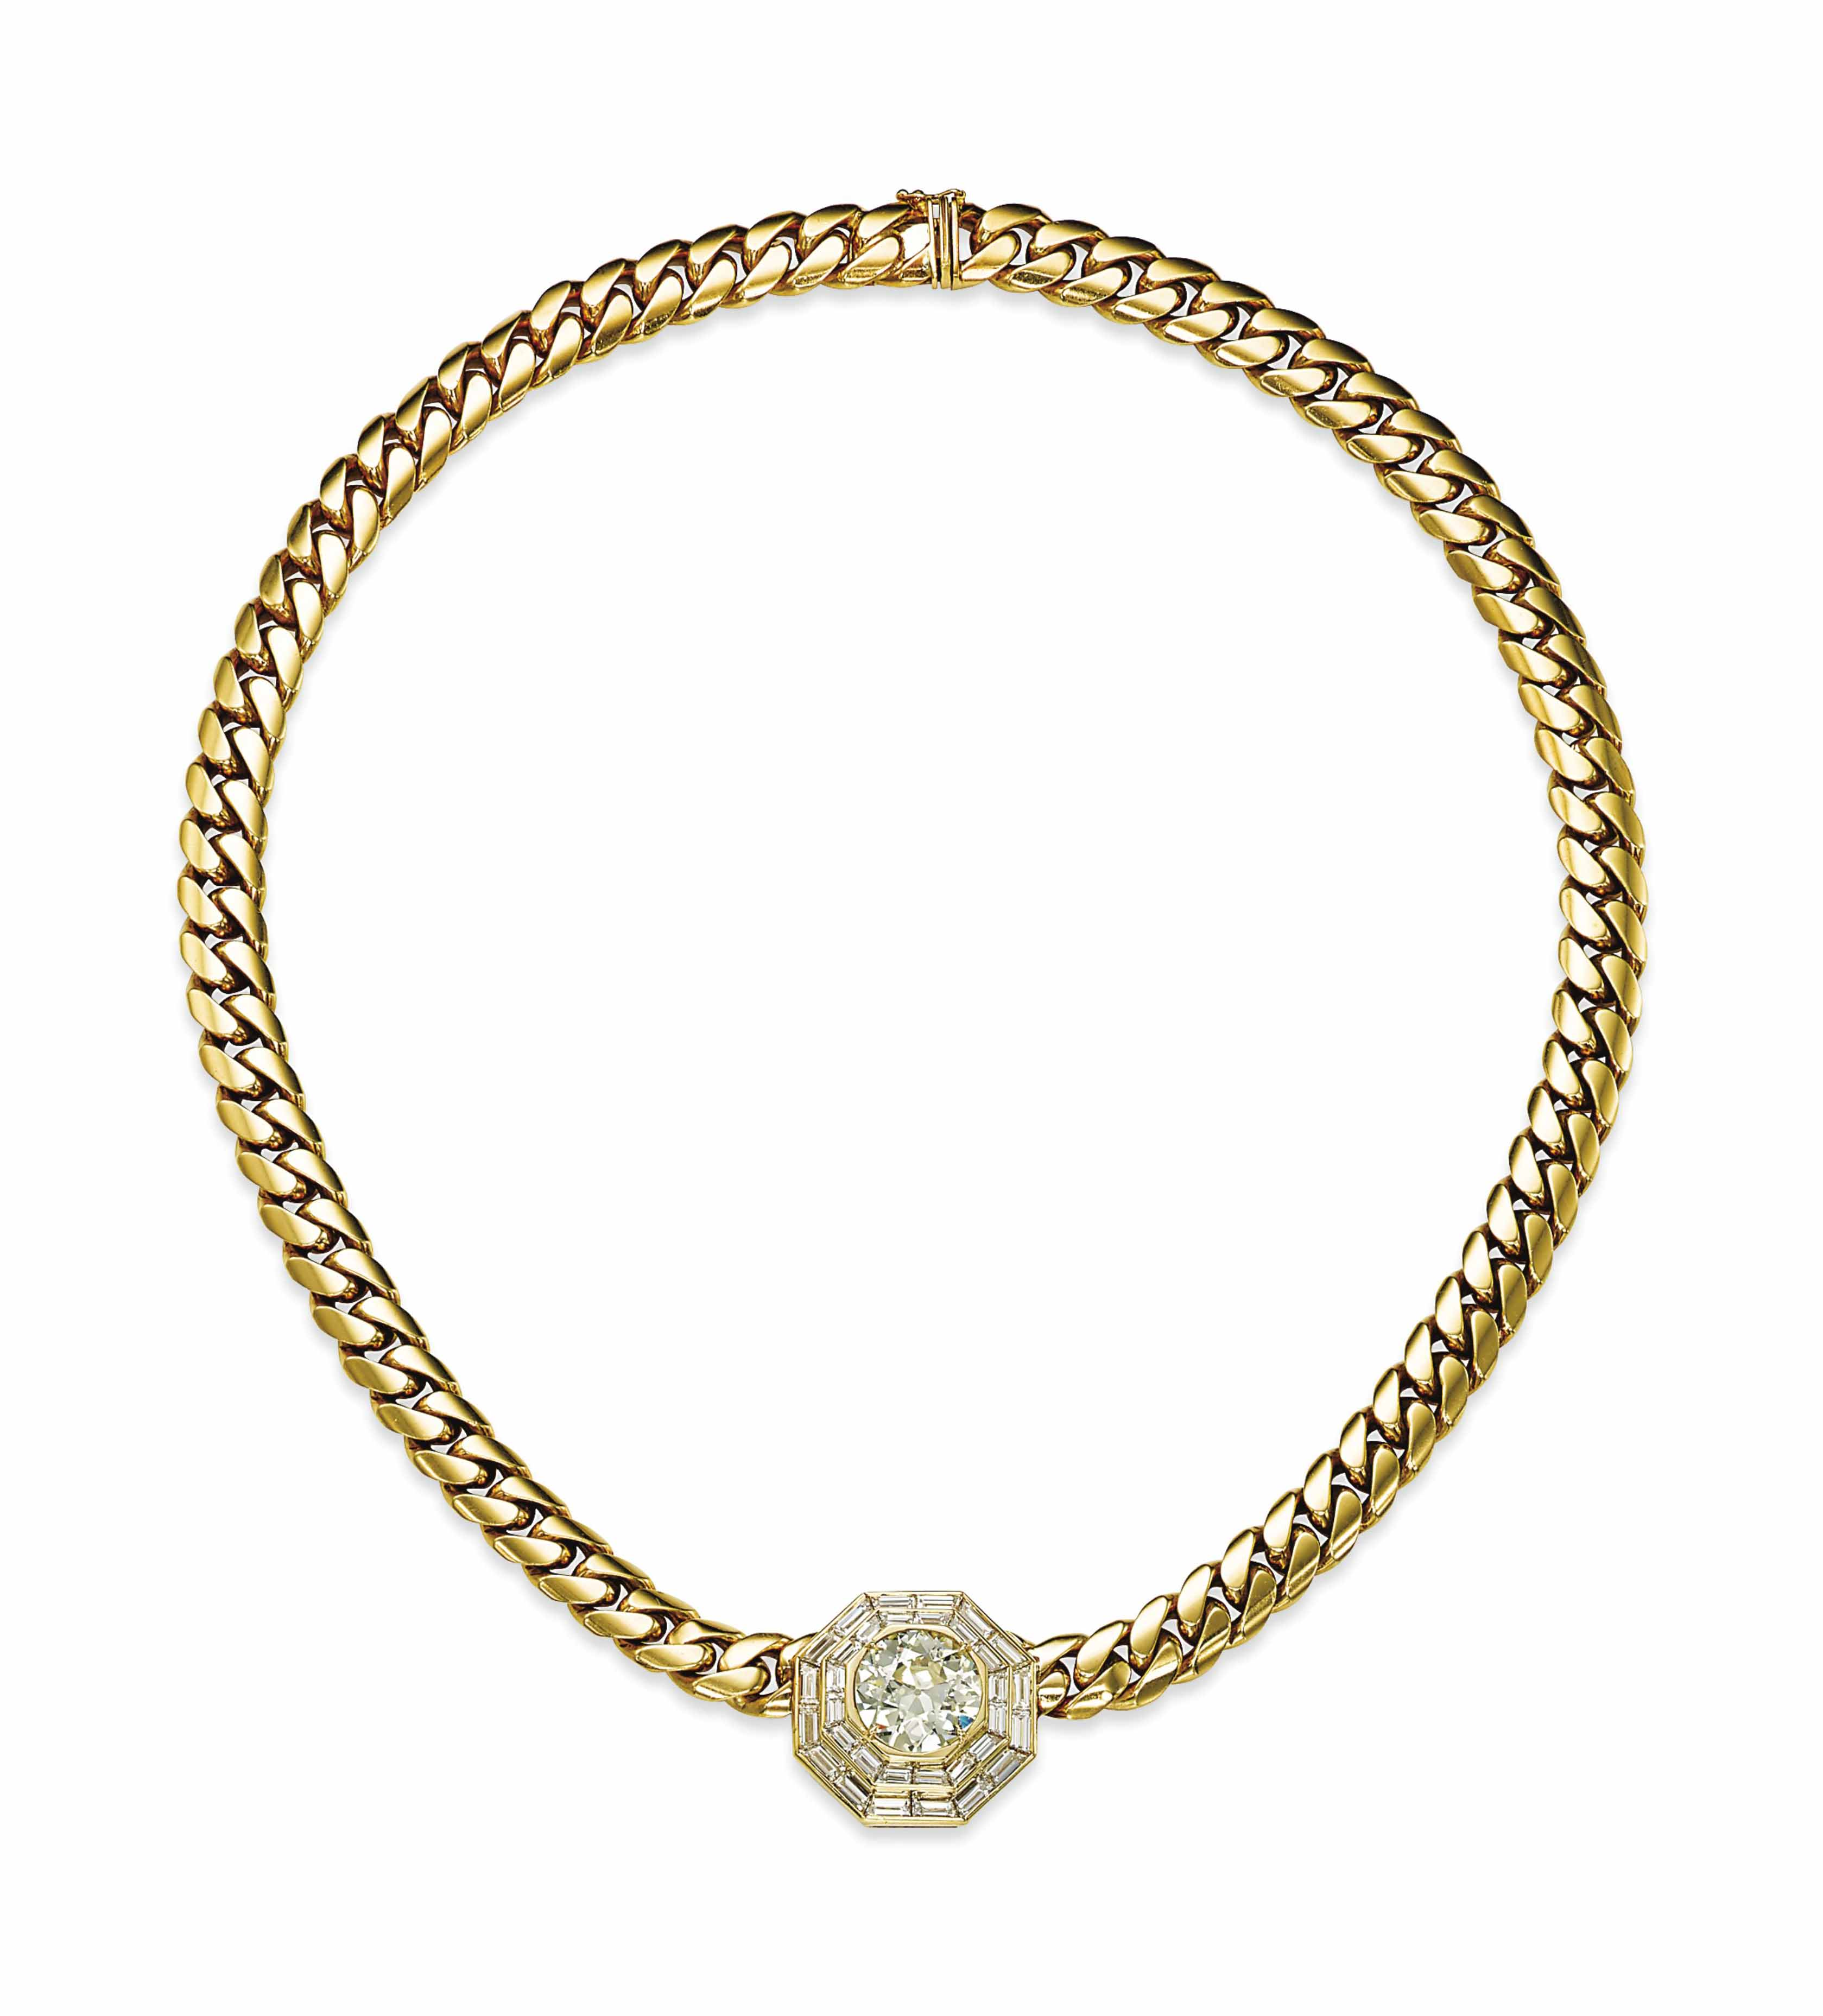 A GOLD AND DIAMOND NECKLACE, BY ADLER